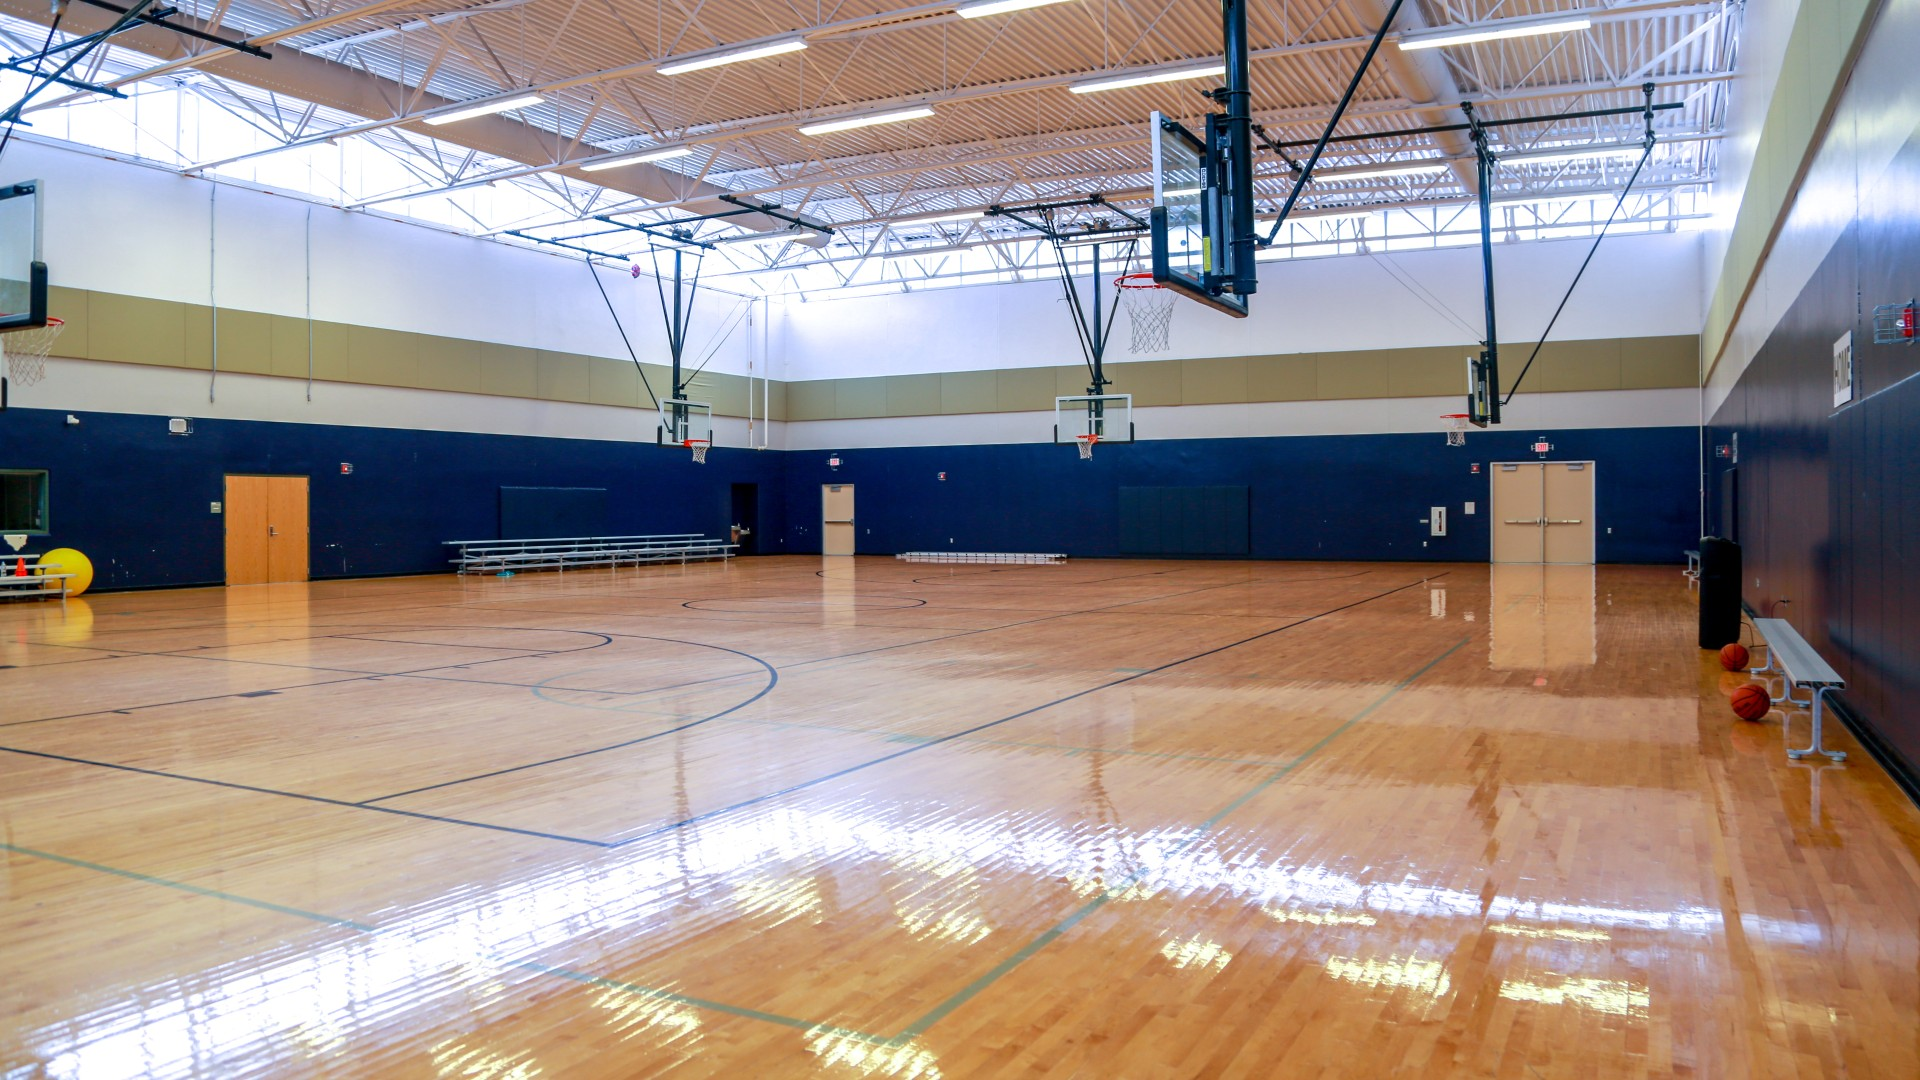 An open gymnasium with multiple courts and basketball hoops